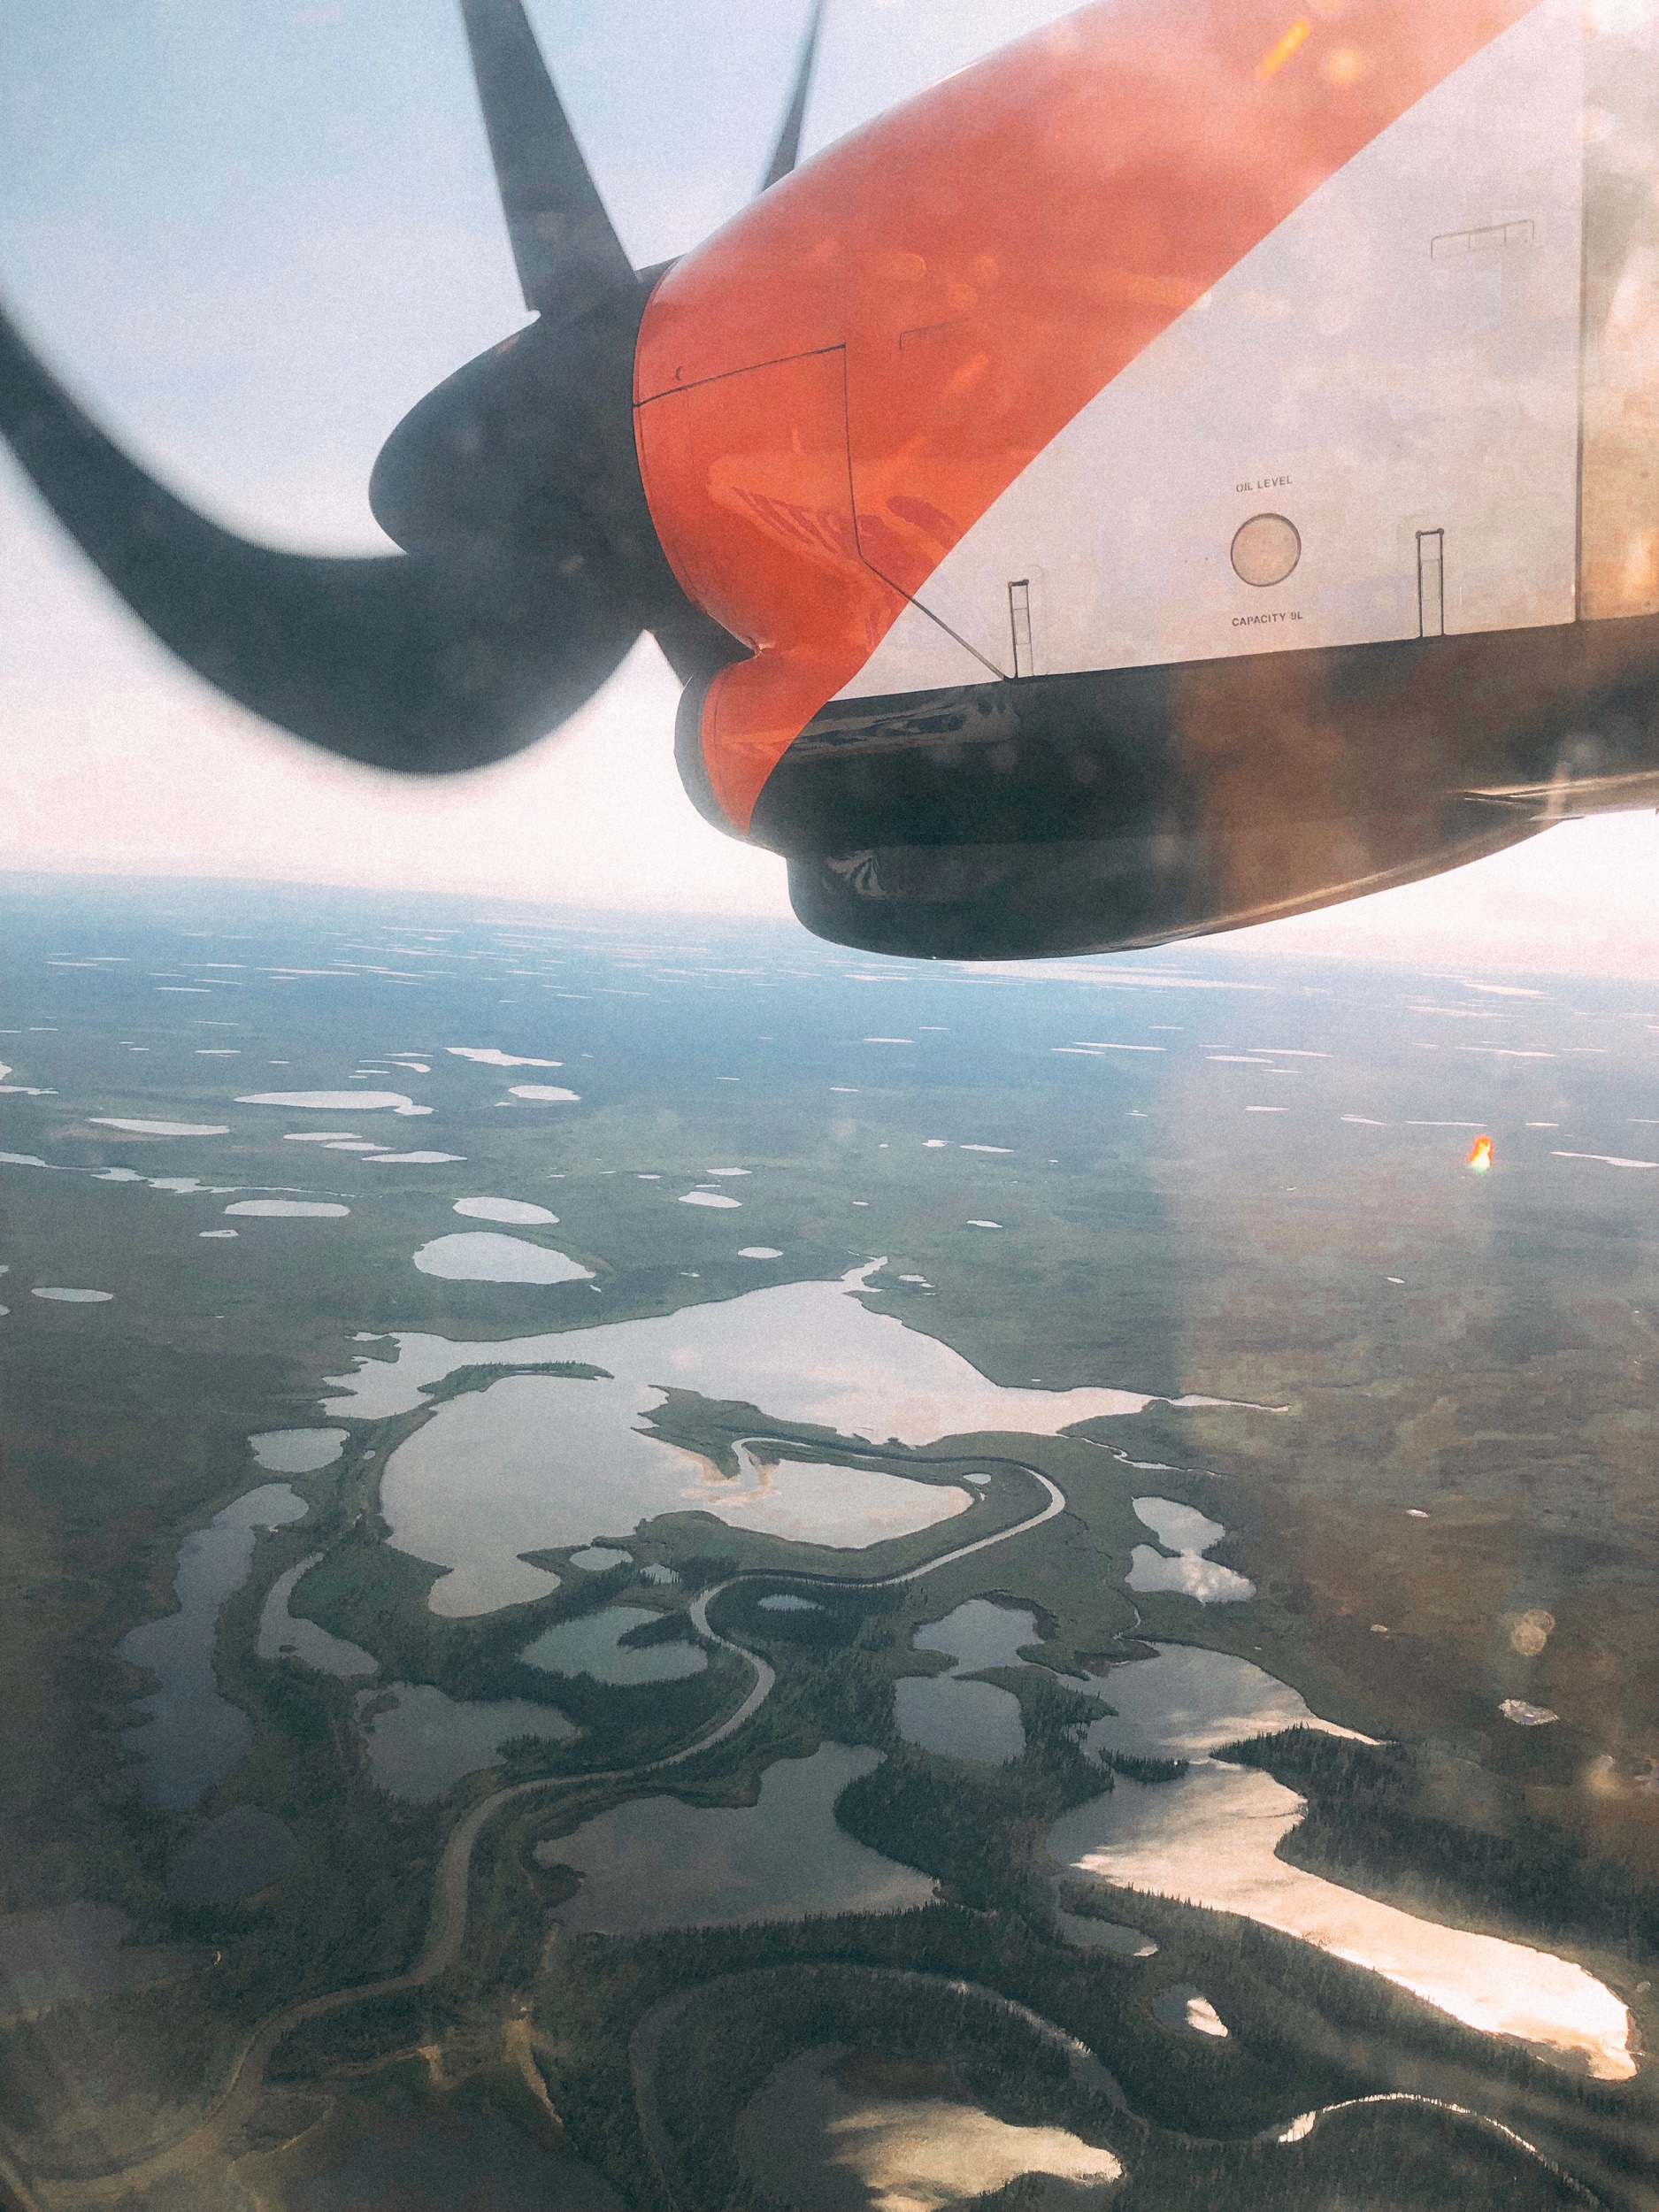 Air North flight from Whitehorse to Inuvik, Arctic